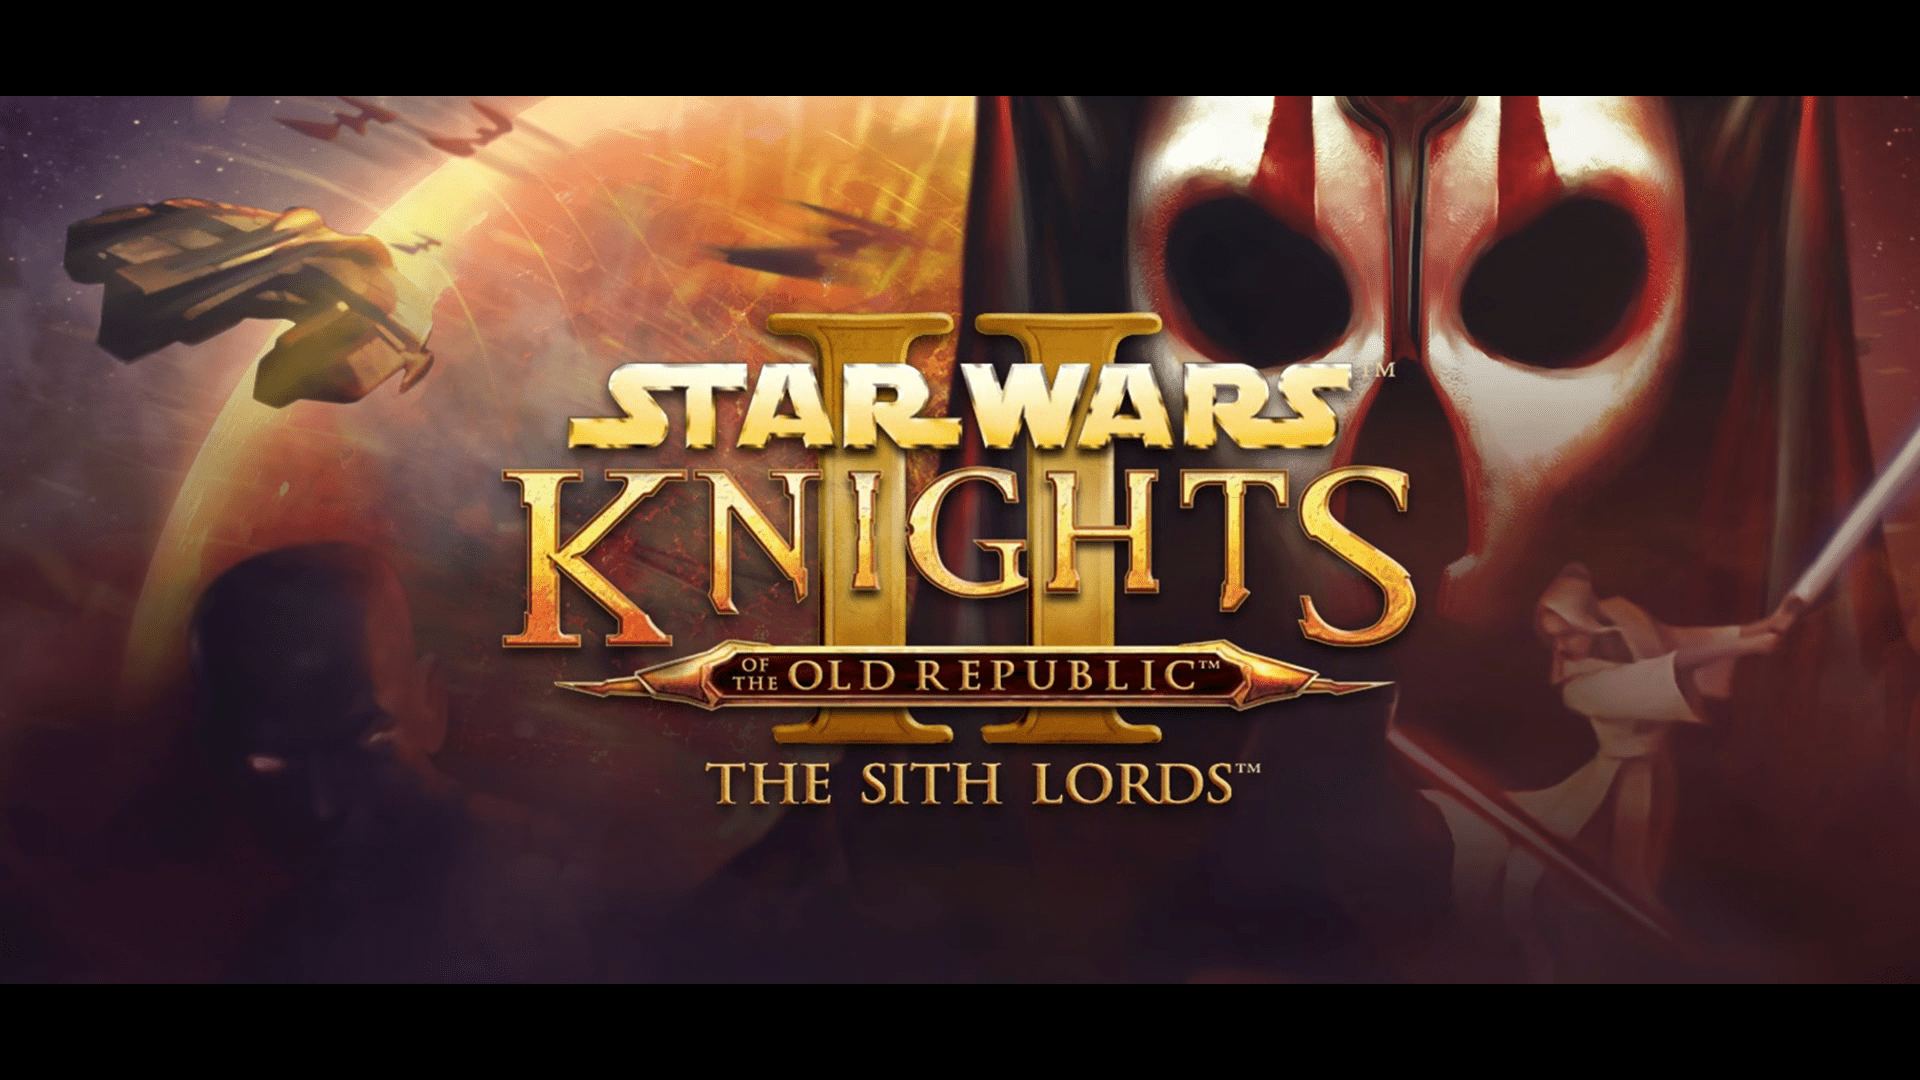 Star Wars RPG KOTOR II Is Making Its Way To Mobile, Thanks To A Group Of Dedicated Fans